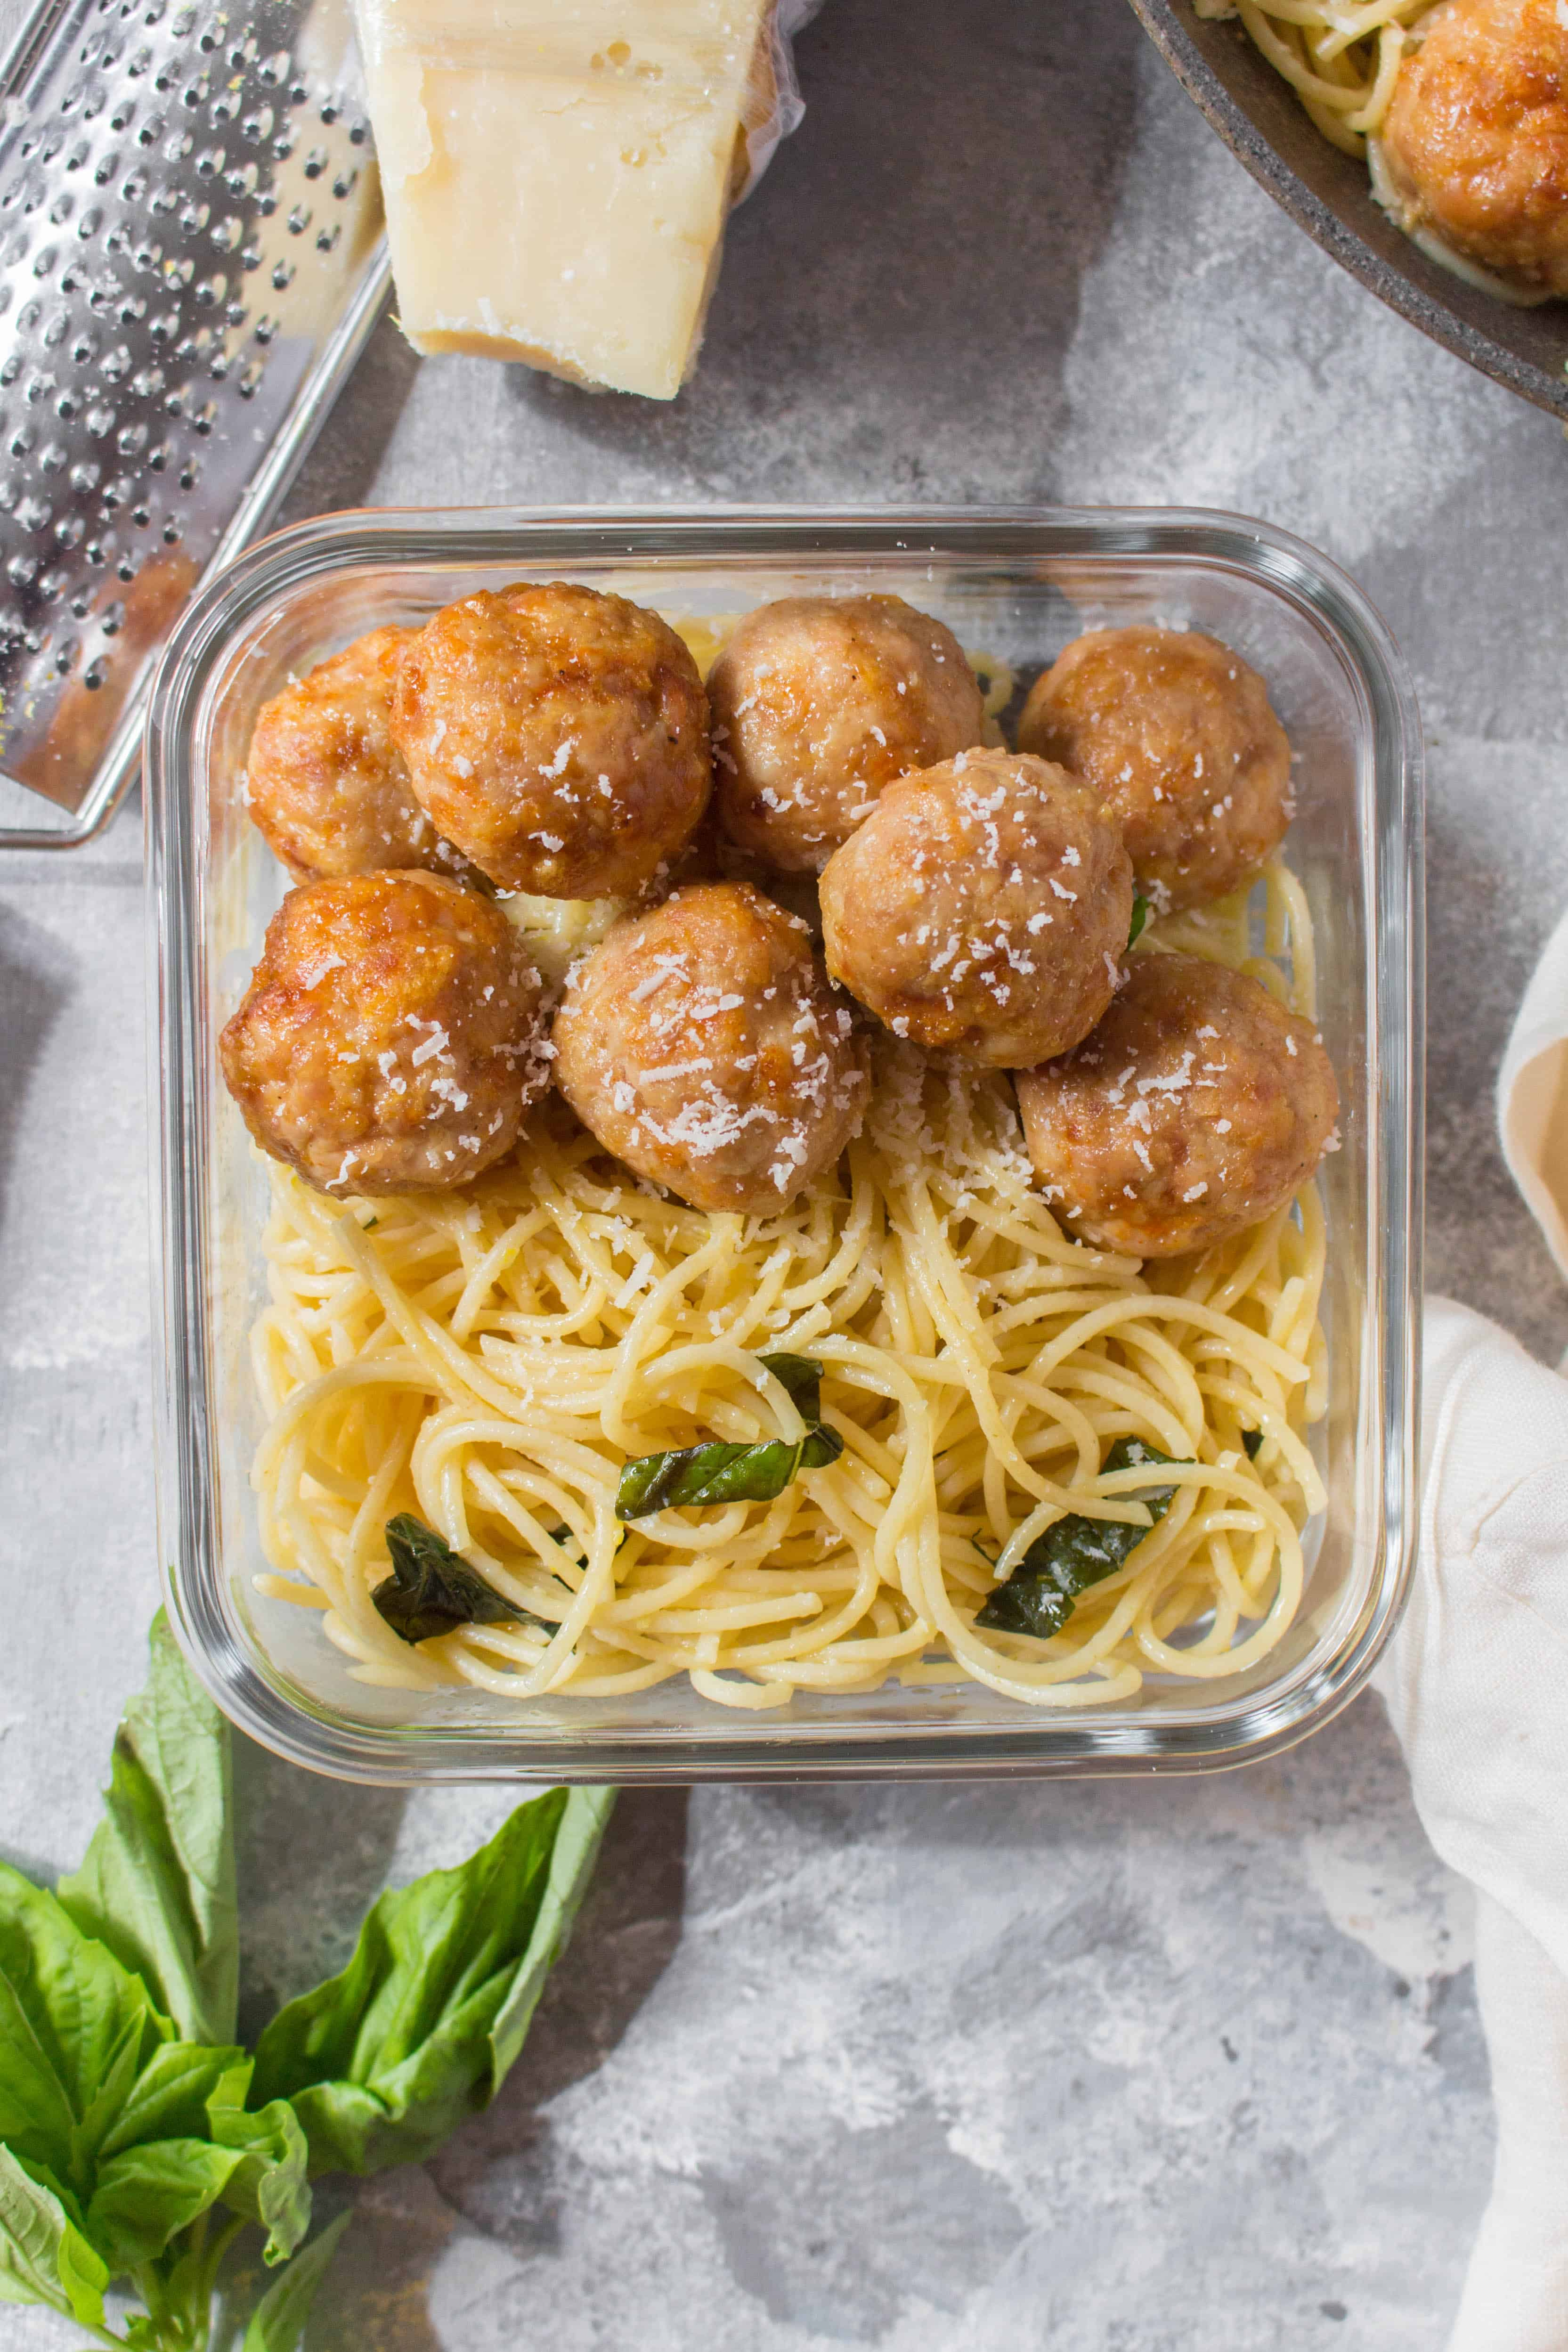 These Easy Baked Chicken Meatballs tender, juicy, and are so versatile! Great for adding to a meal prep, dinner, or as an appetizer on its own!